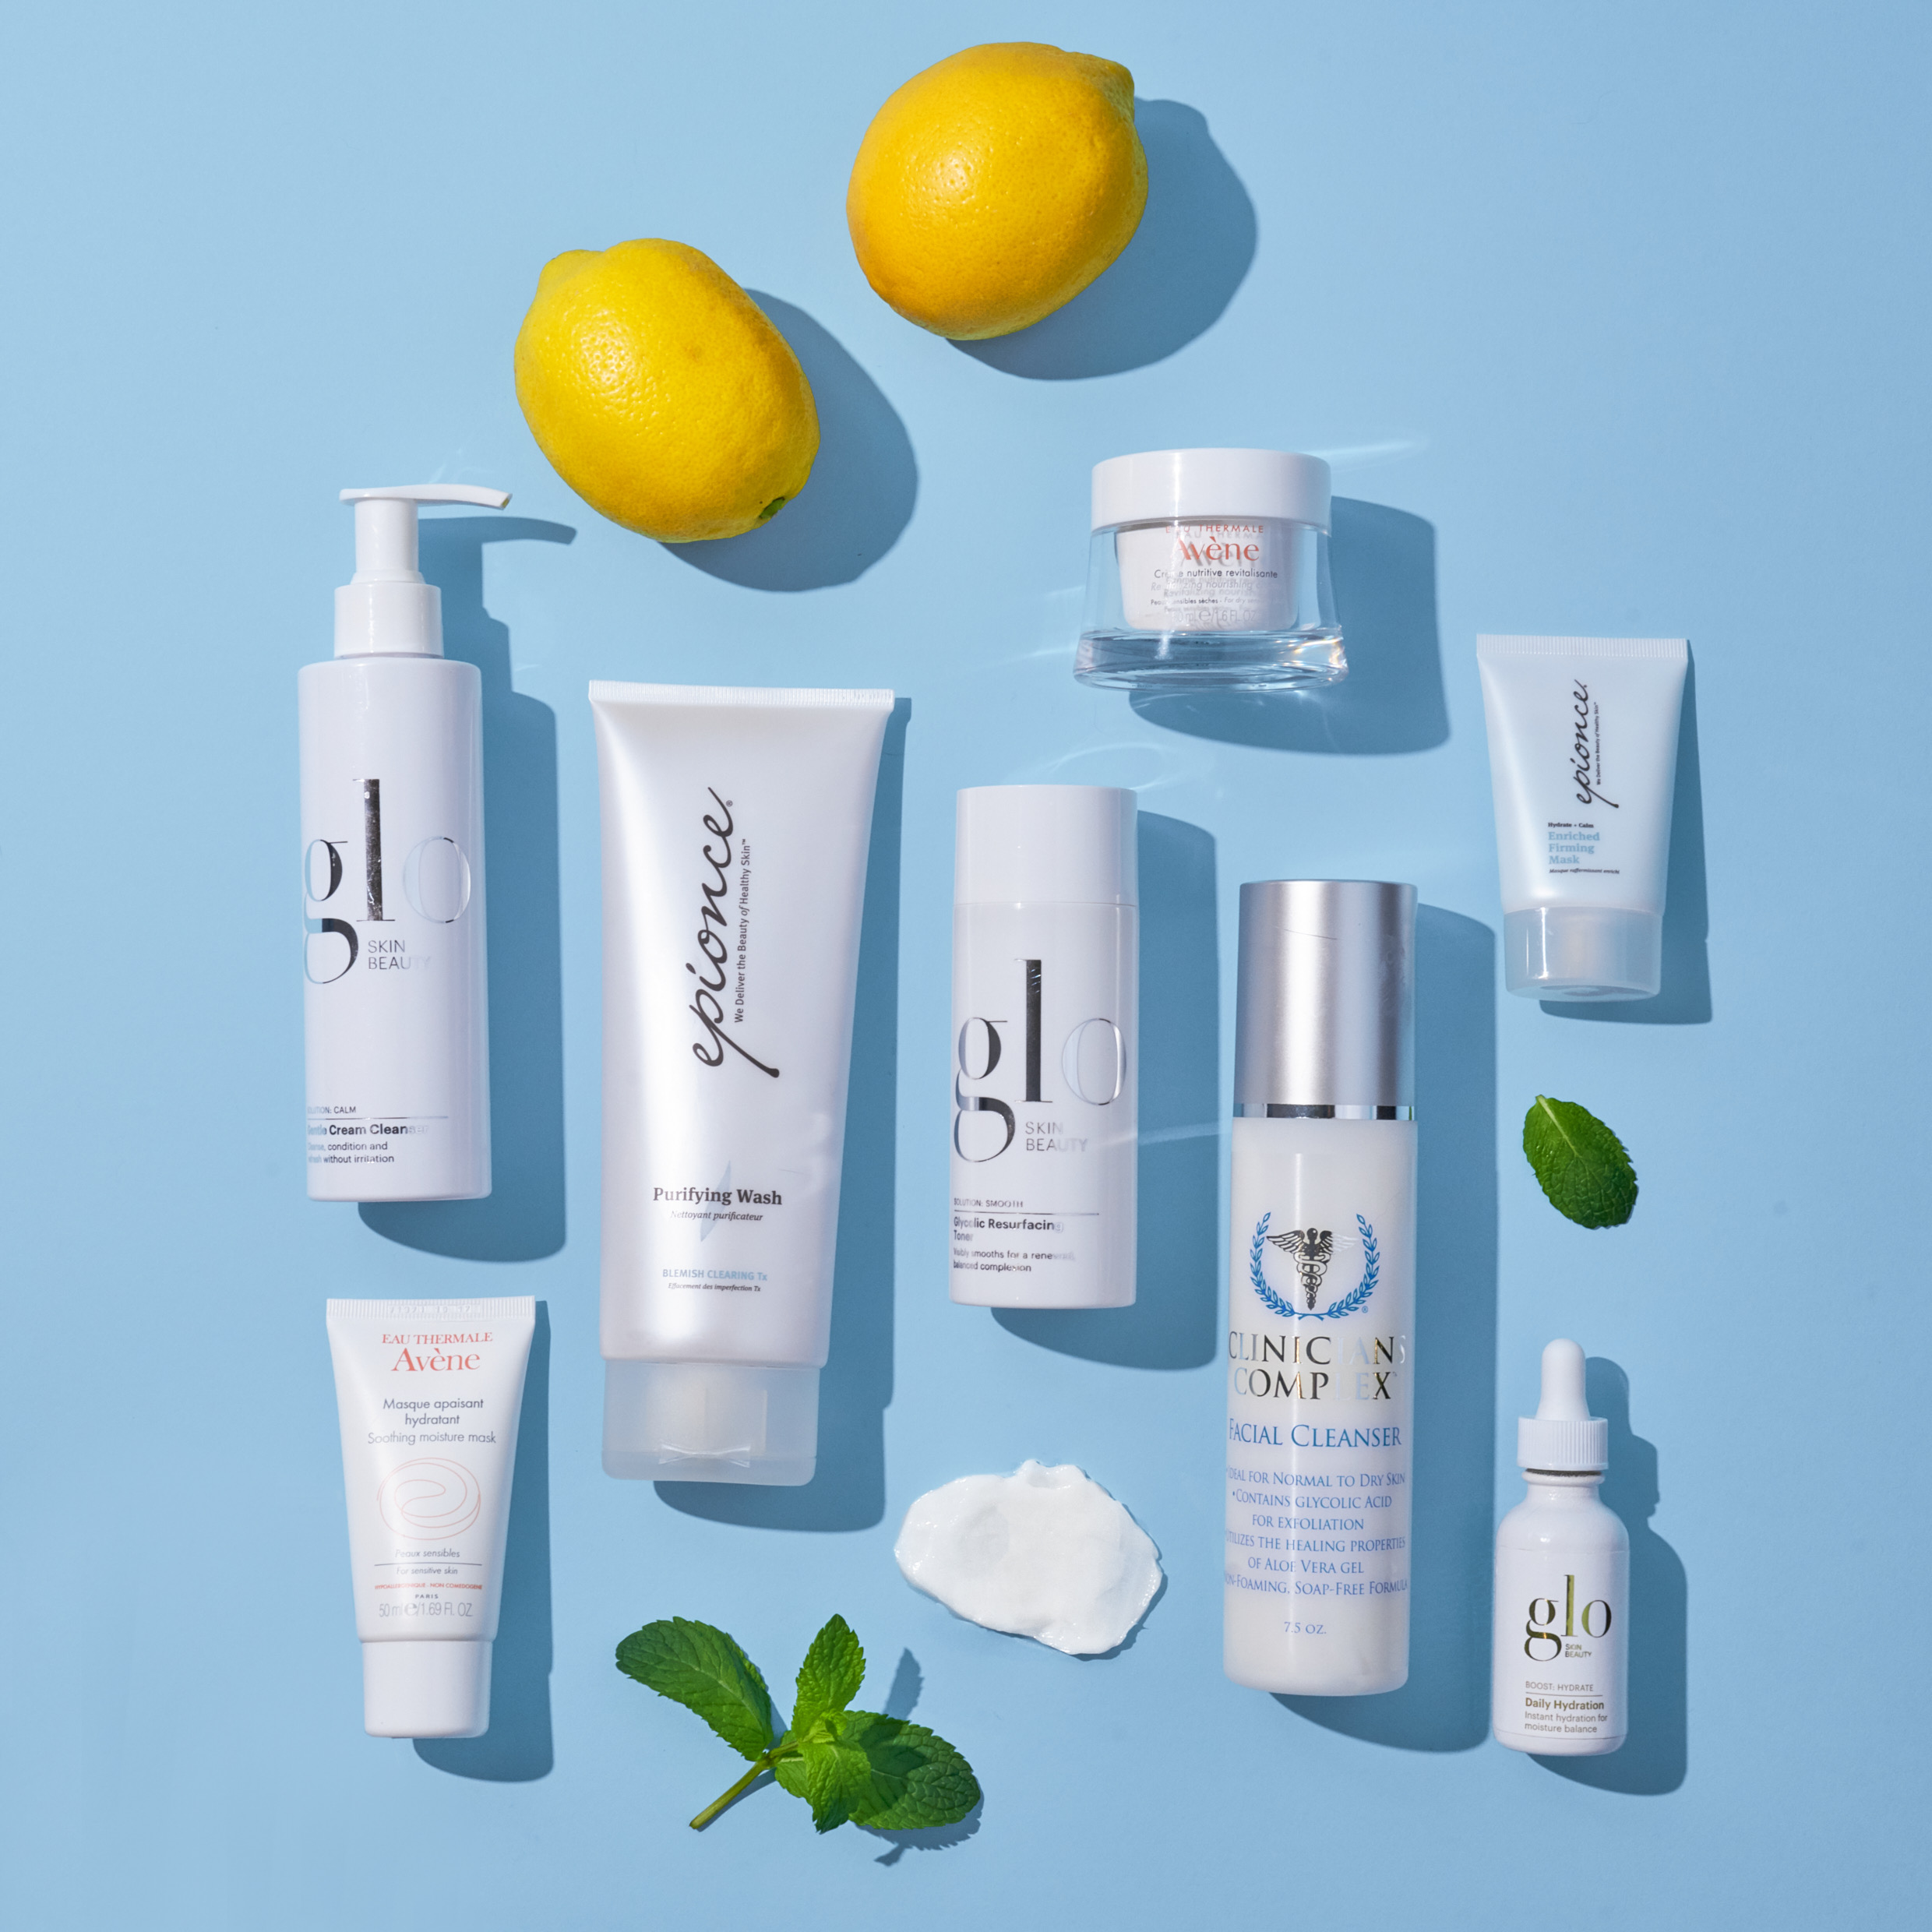 Image Nailed It skincare arranged on blue backdrop with lemons